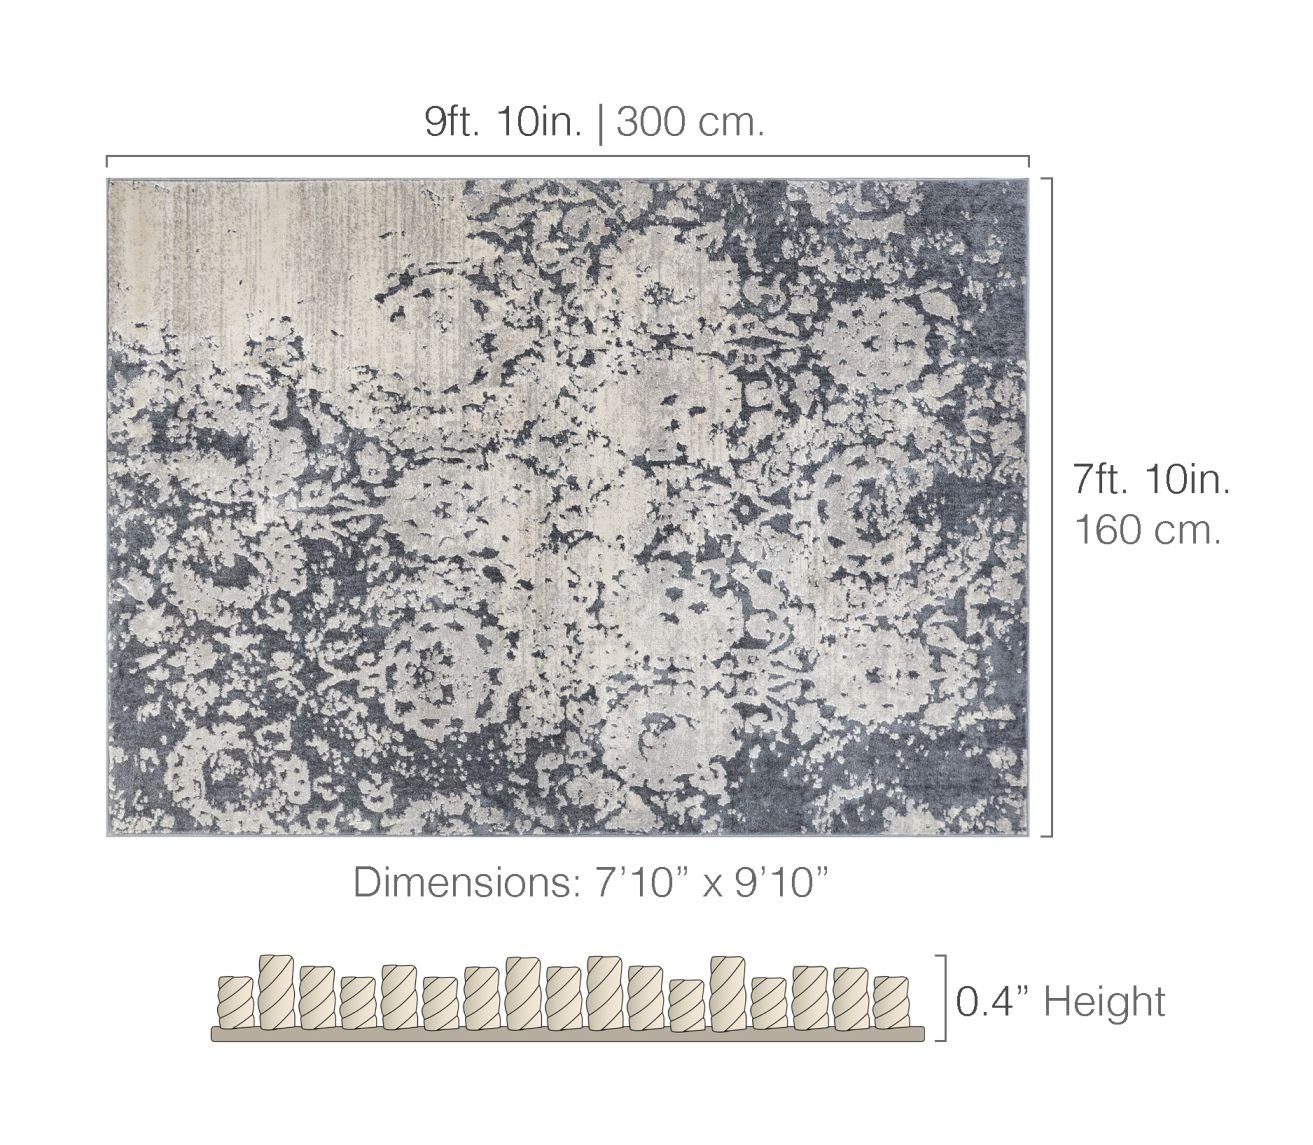 Forte Grey Microfiber High-Low Pile Vintage Abstract Erased Floral 8x10 (7'10'' x 9'10'') Area Rug Modern Oriental Carpet by Well Woven (Image #7)